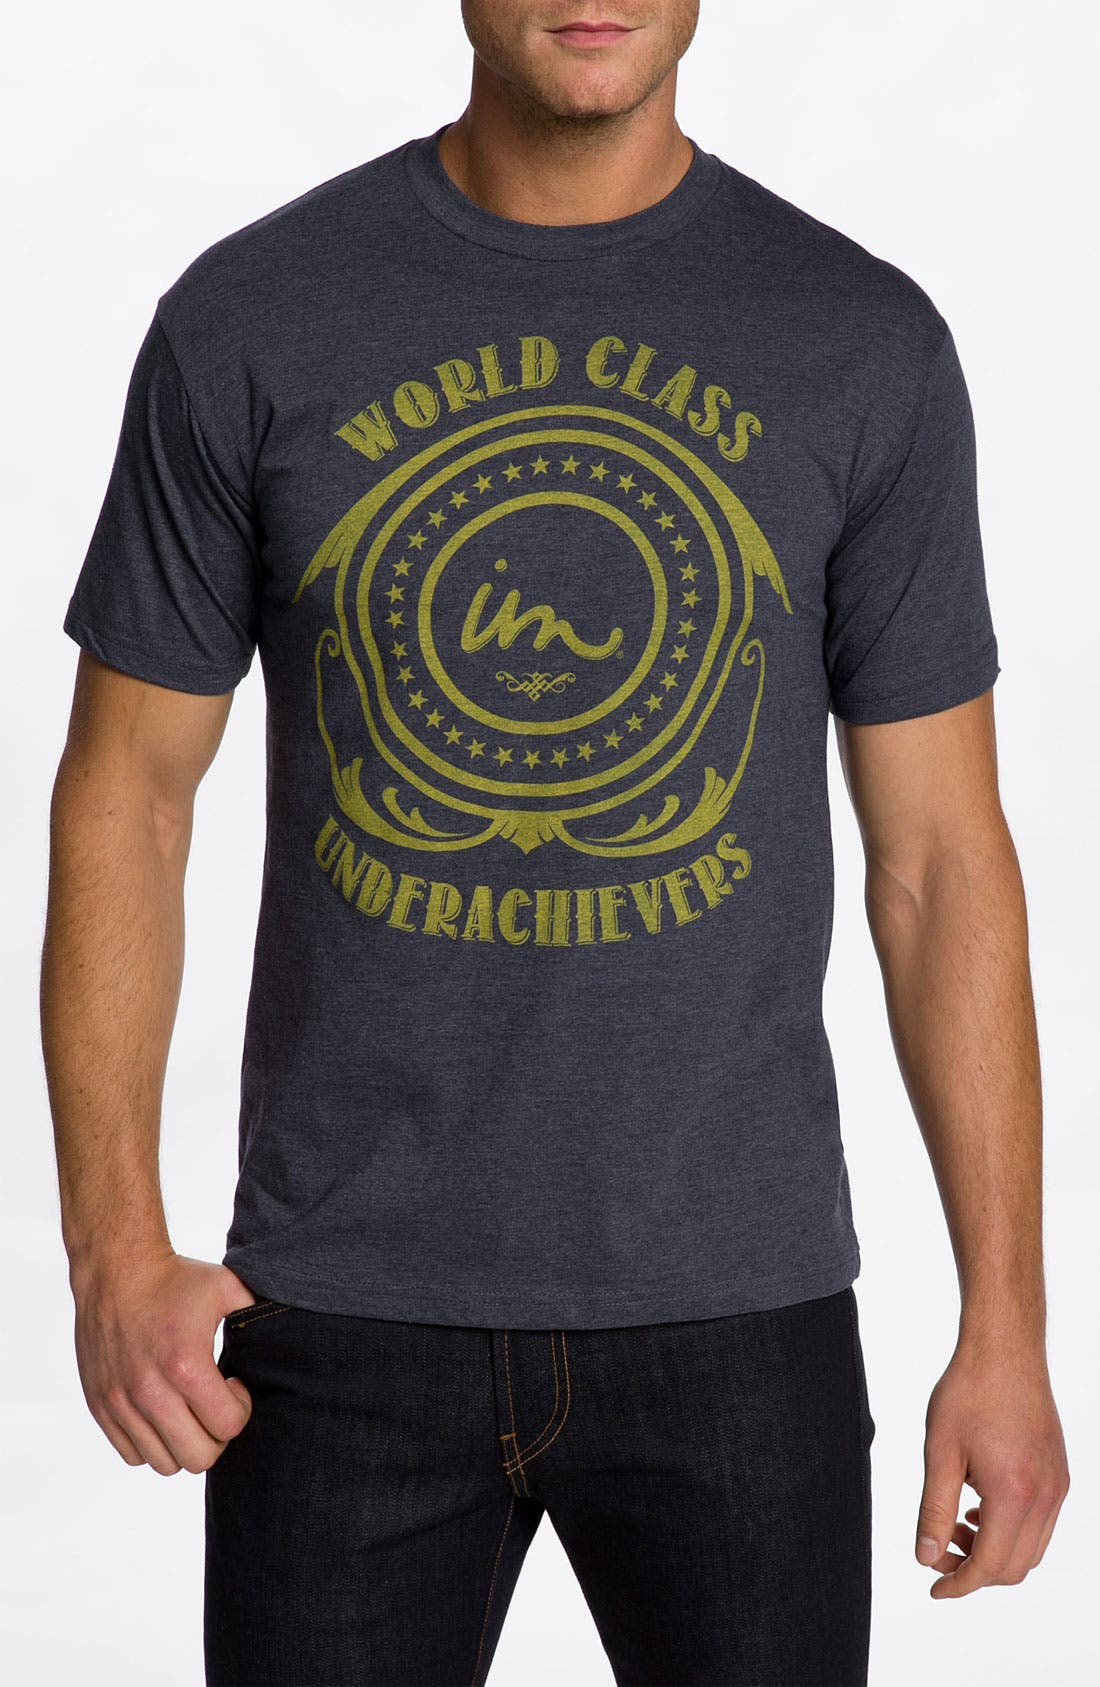 Main Image - Imperial Motion 'World Class' Graphic T-Shirt